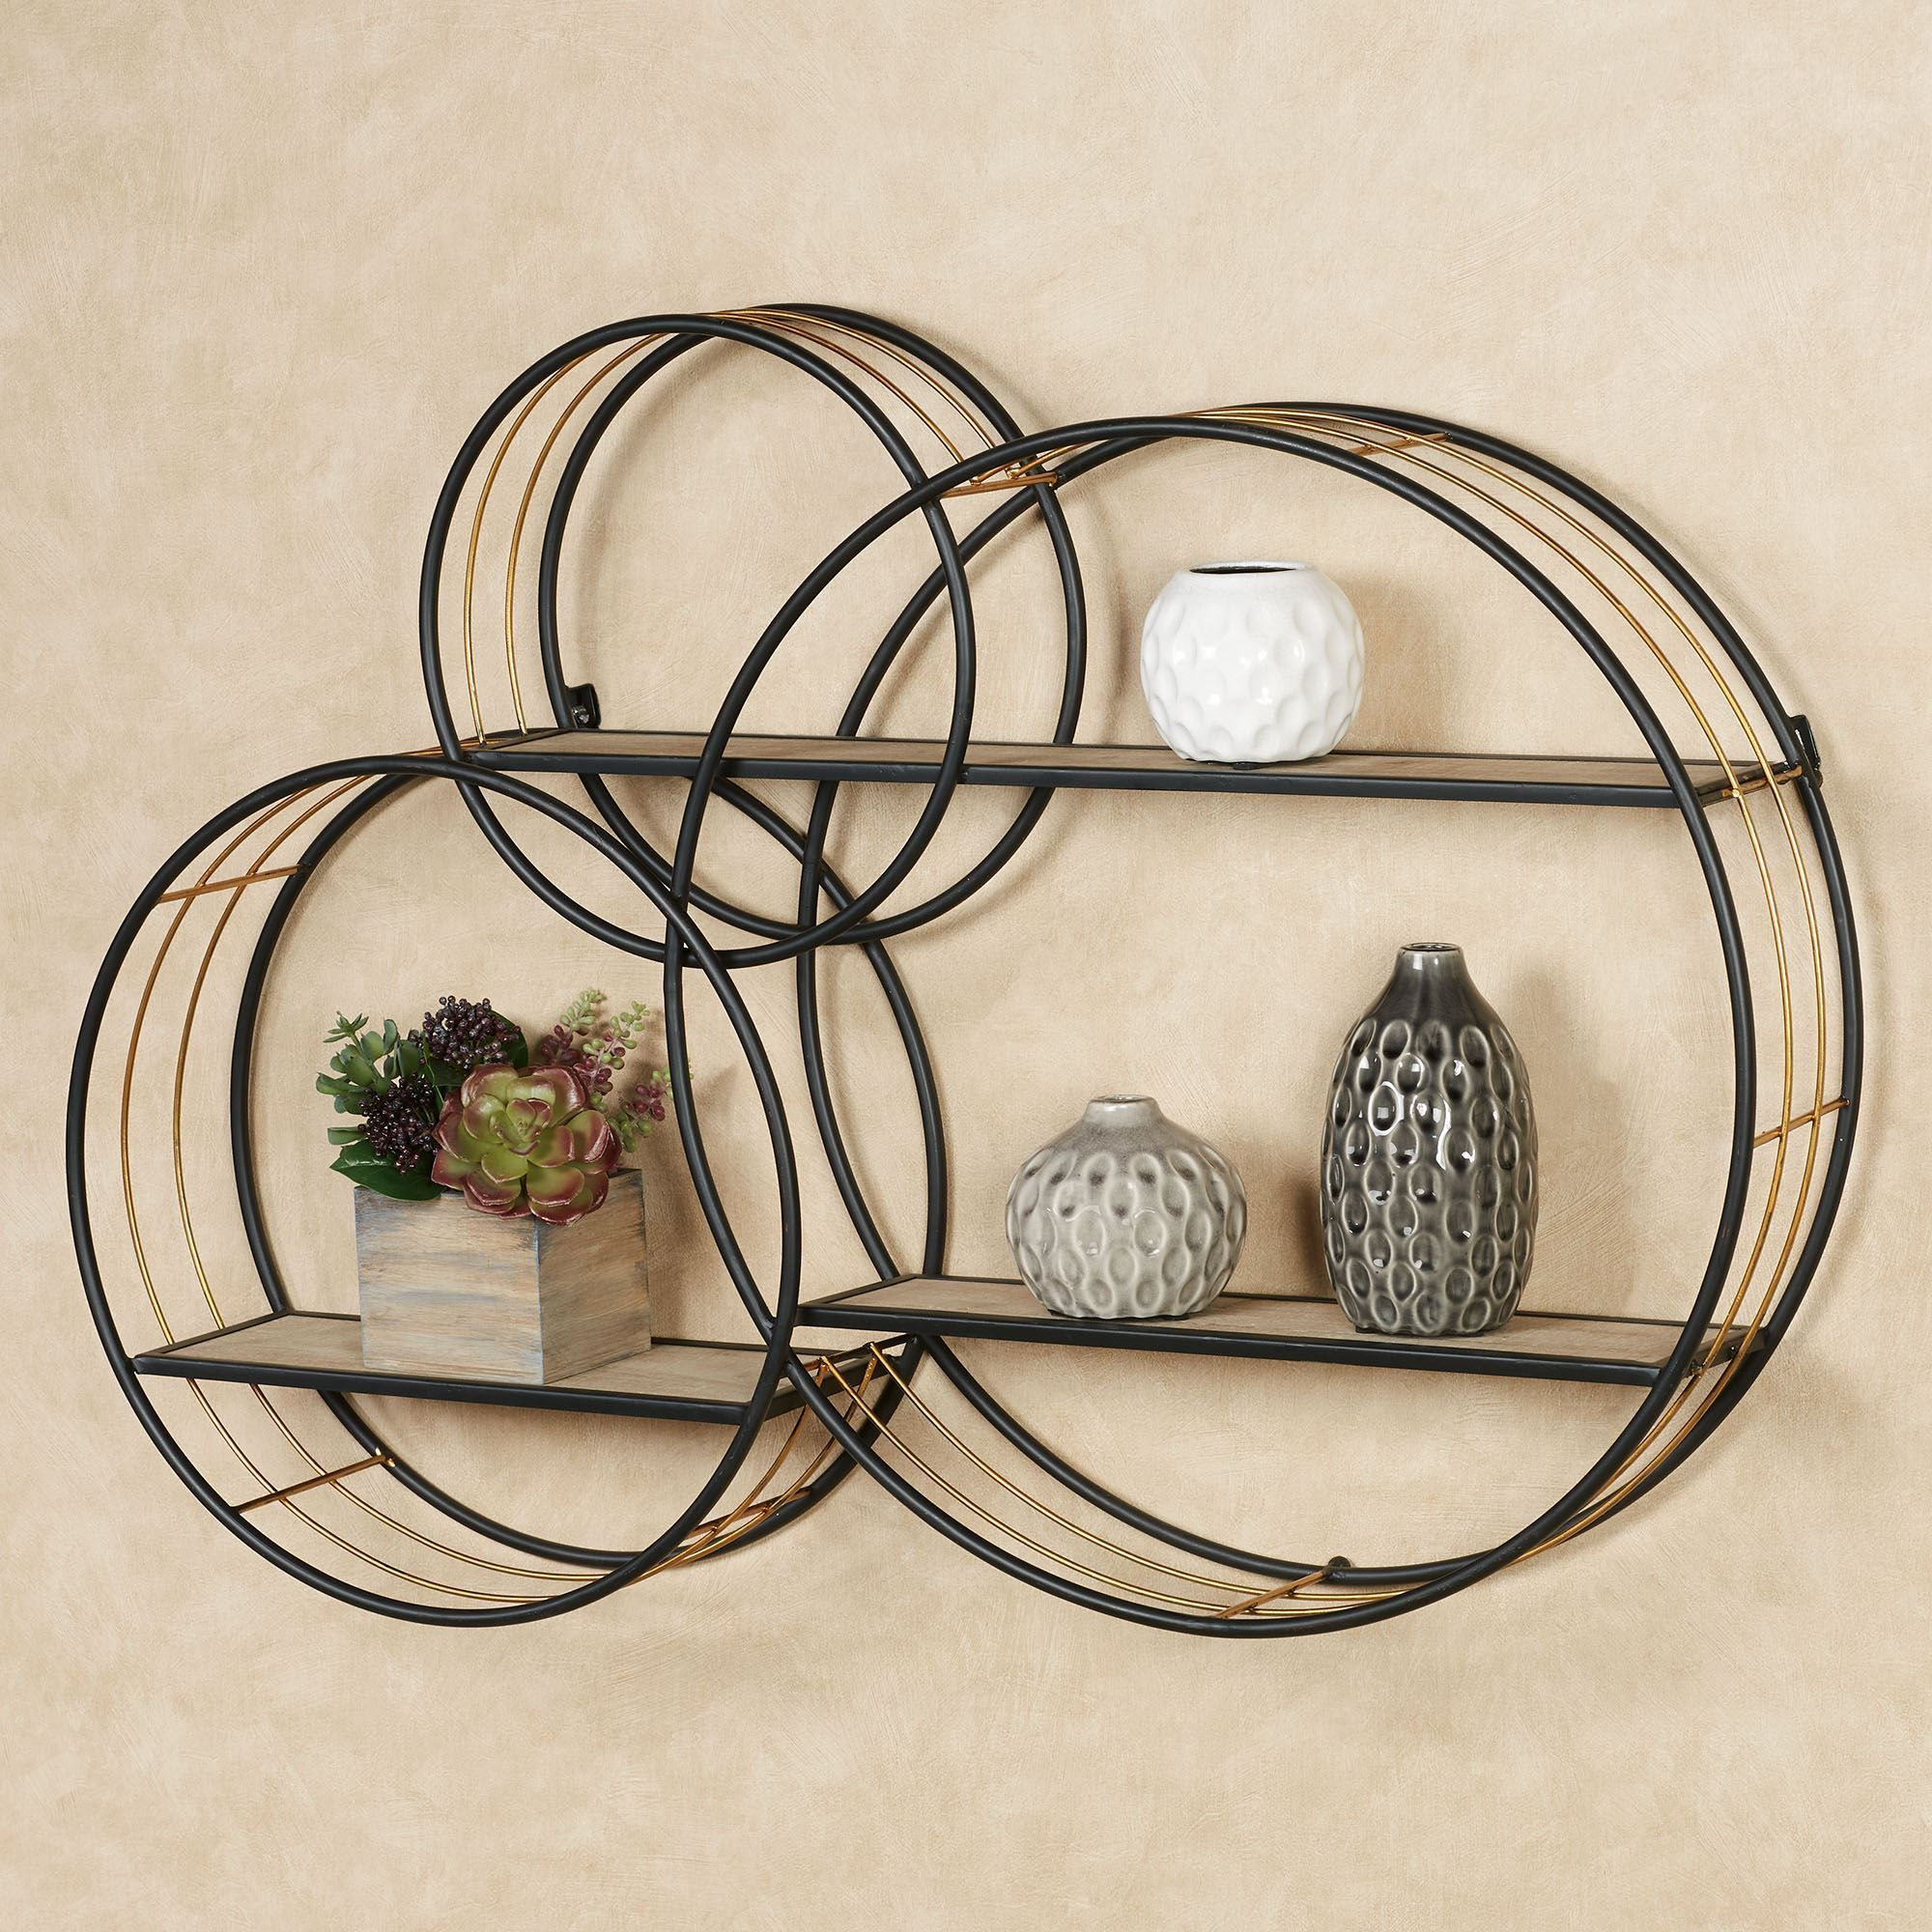 Macayle Circles Modern Wall Display Shelf Circle Wall Shelf Decor Wall Shelves